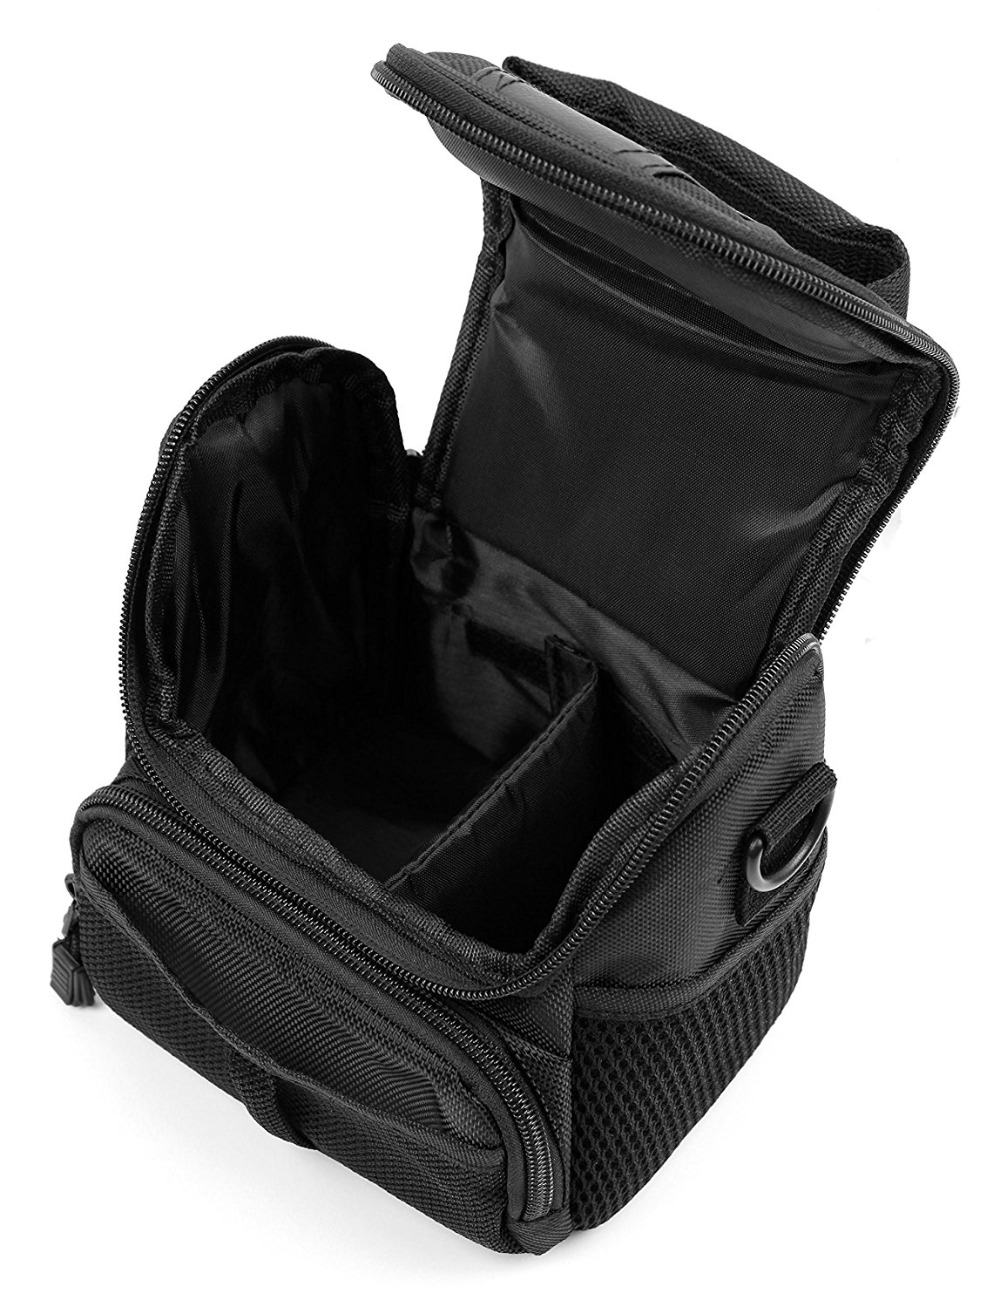 Black Camera Case Bag for GE HZ1500 X400 X500 X550 X600 X2600 X5